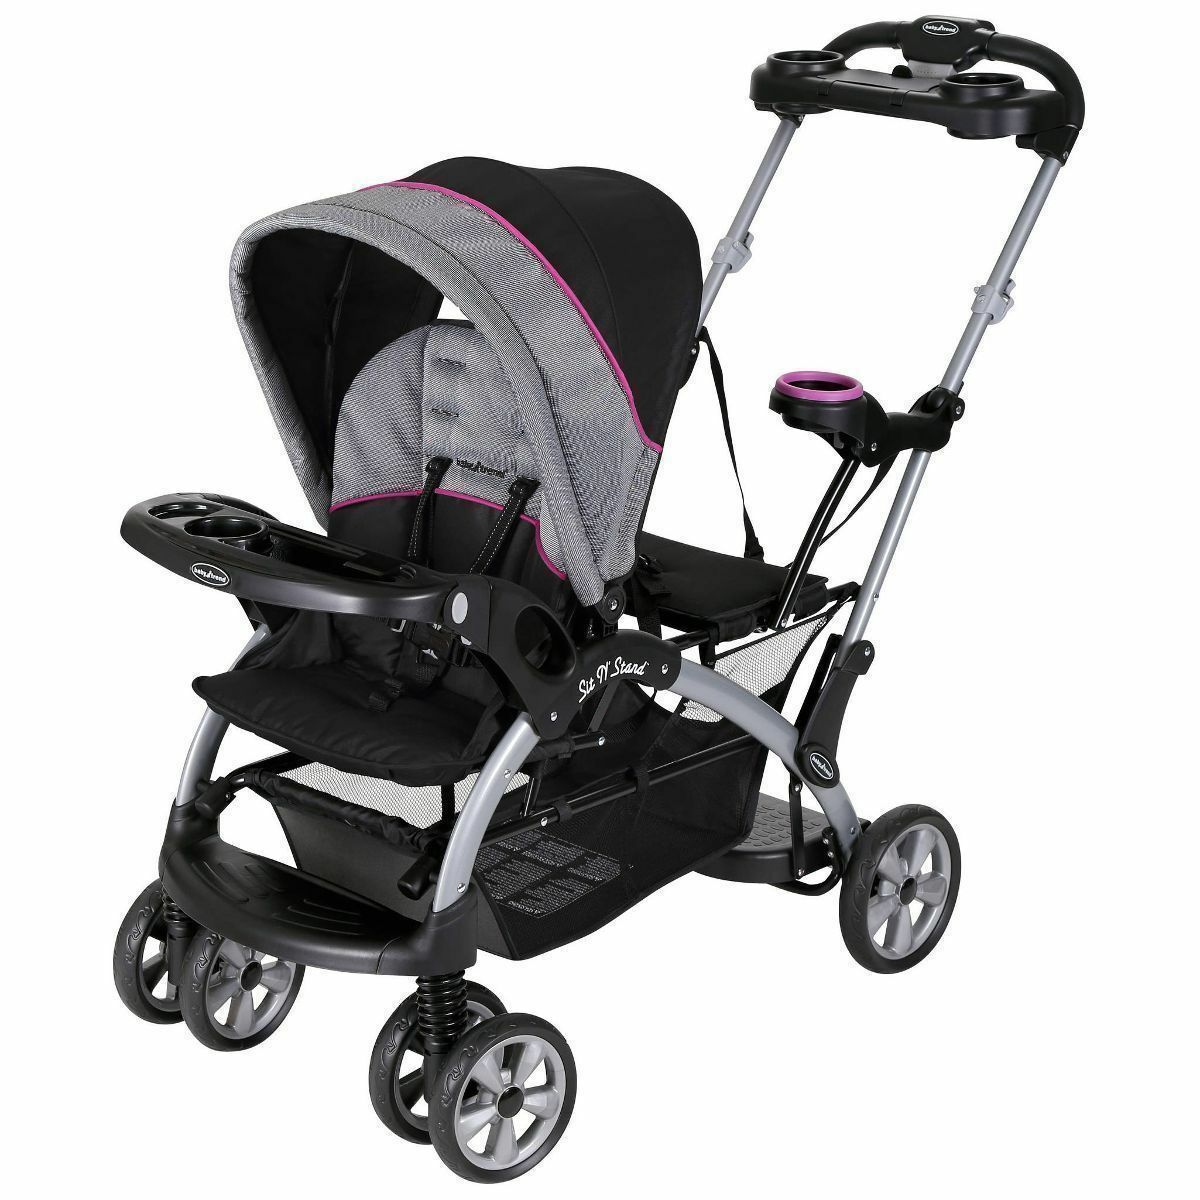 Details About Baby Trend Sit And Stand Stroller Infant Toddler Double Travel System Storage